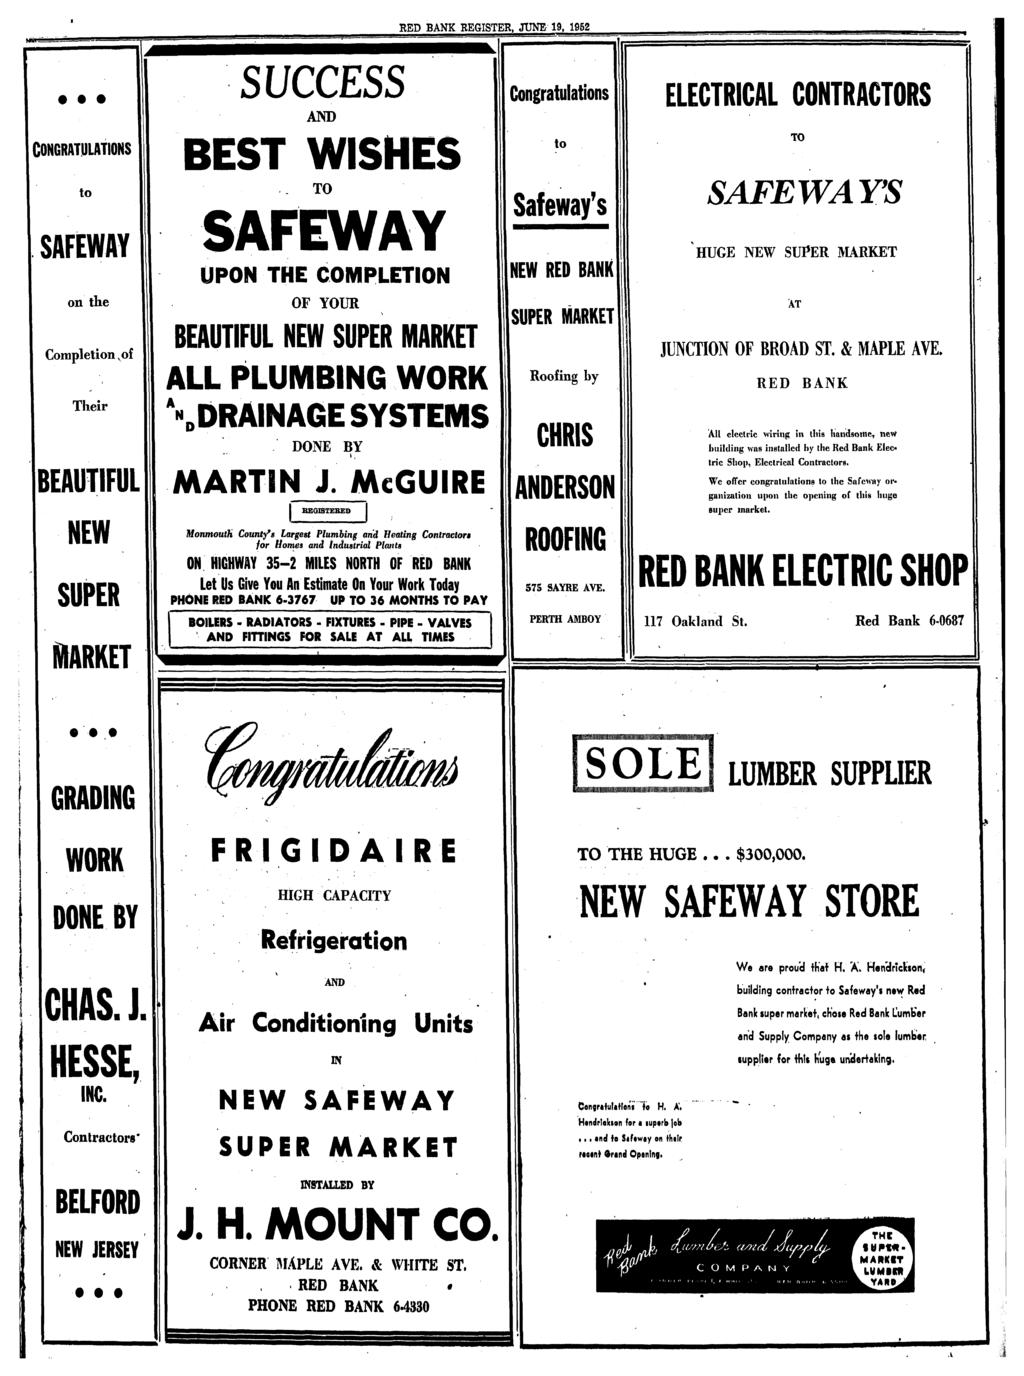 Red Bank Register 10 Cents Pdf Starter And Anti Creep Circuit Wiring Diagram For 1953 Studebaker Champion Commander June 19 1952 S Uccess Congratulations Electrical Contractors To